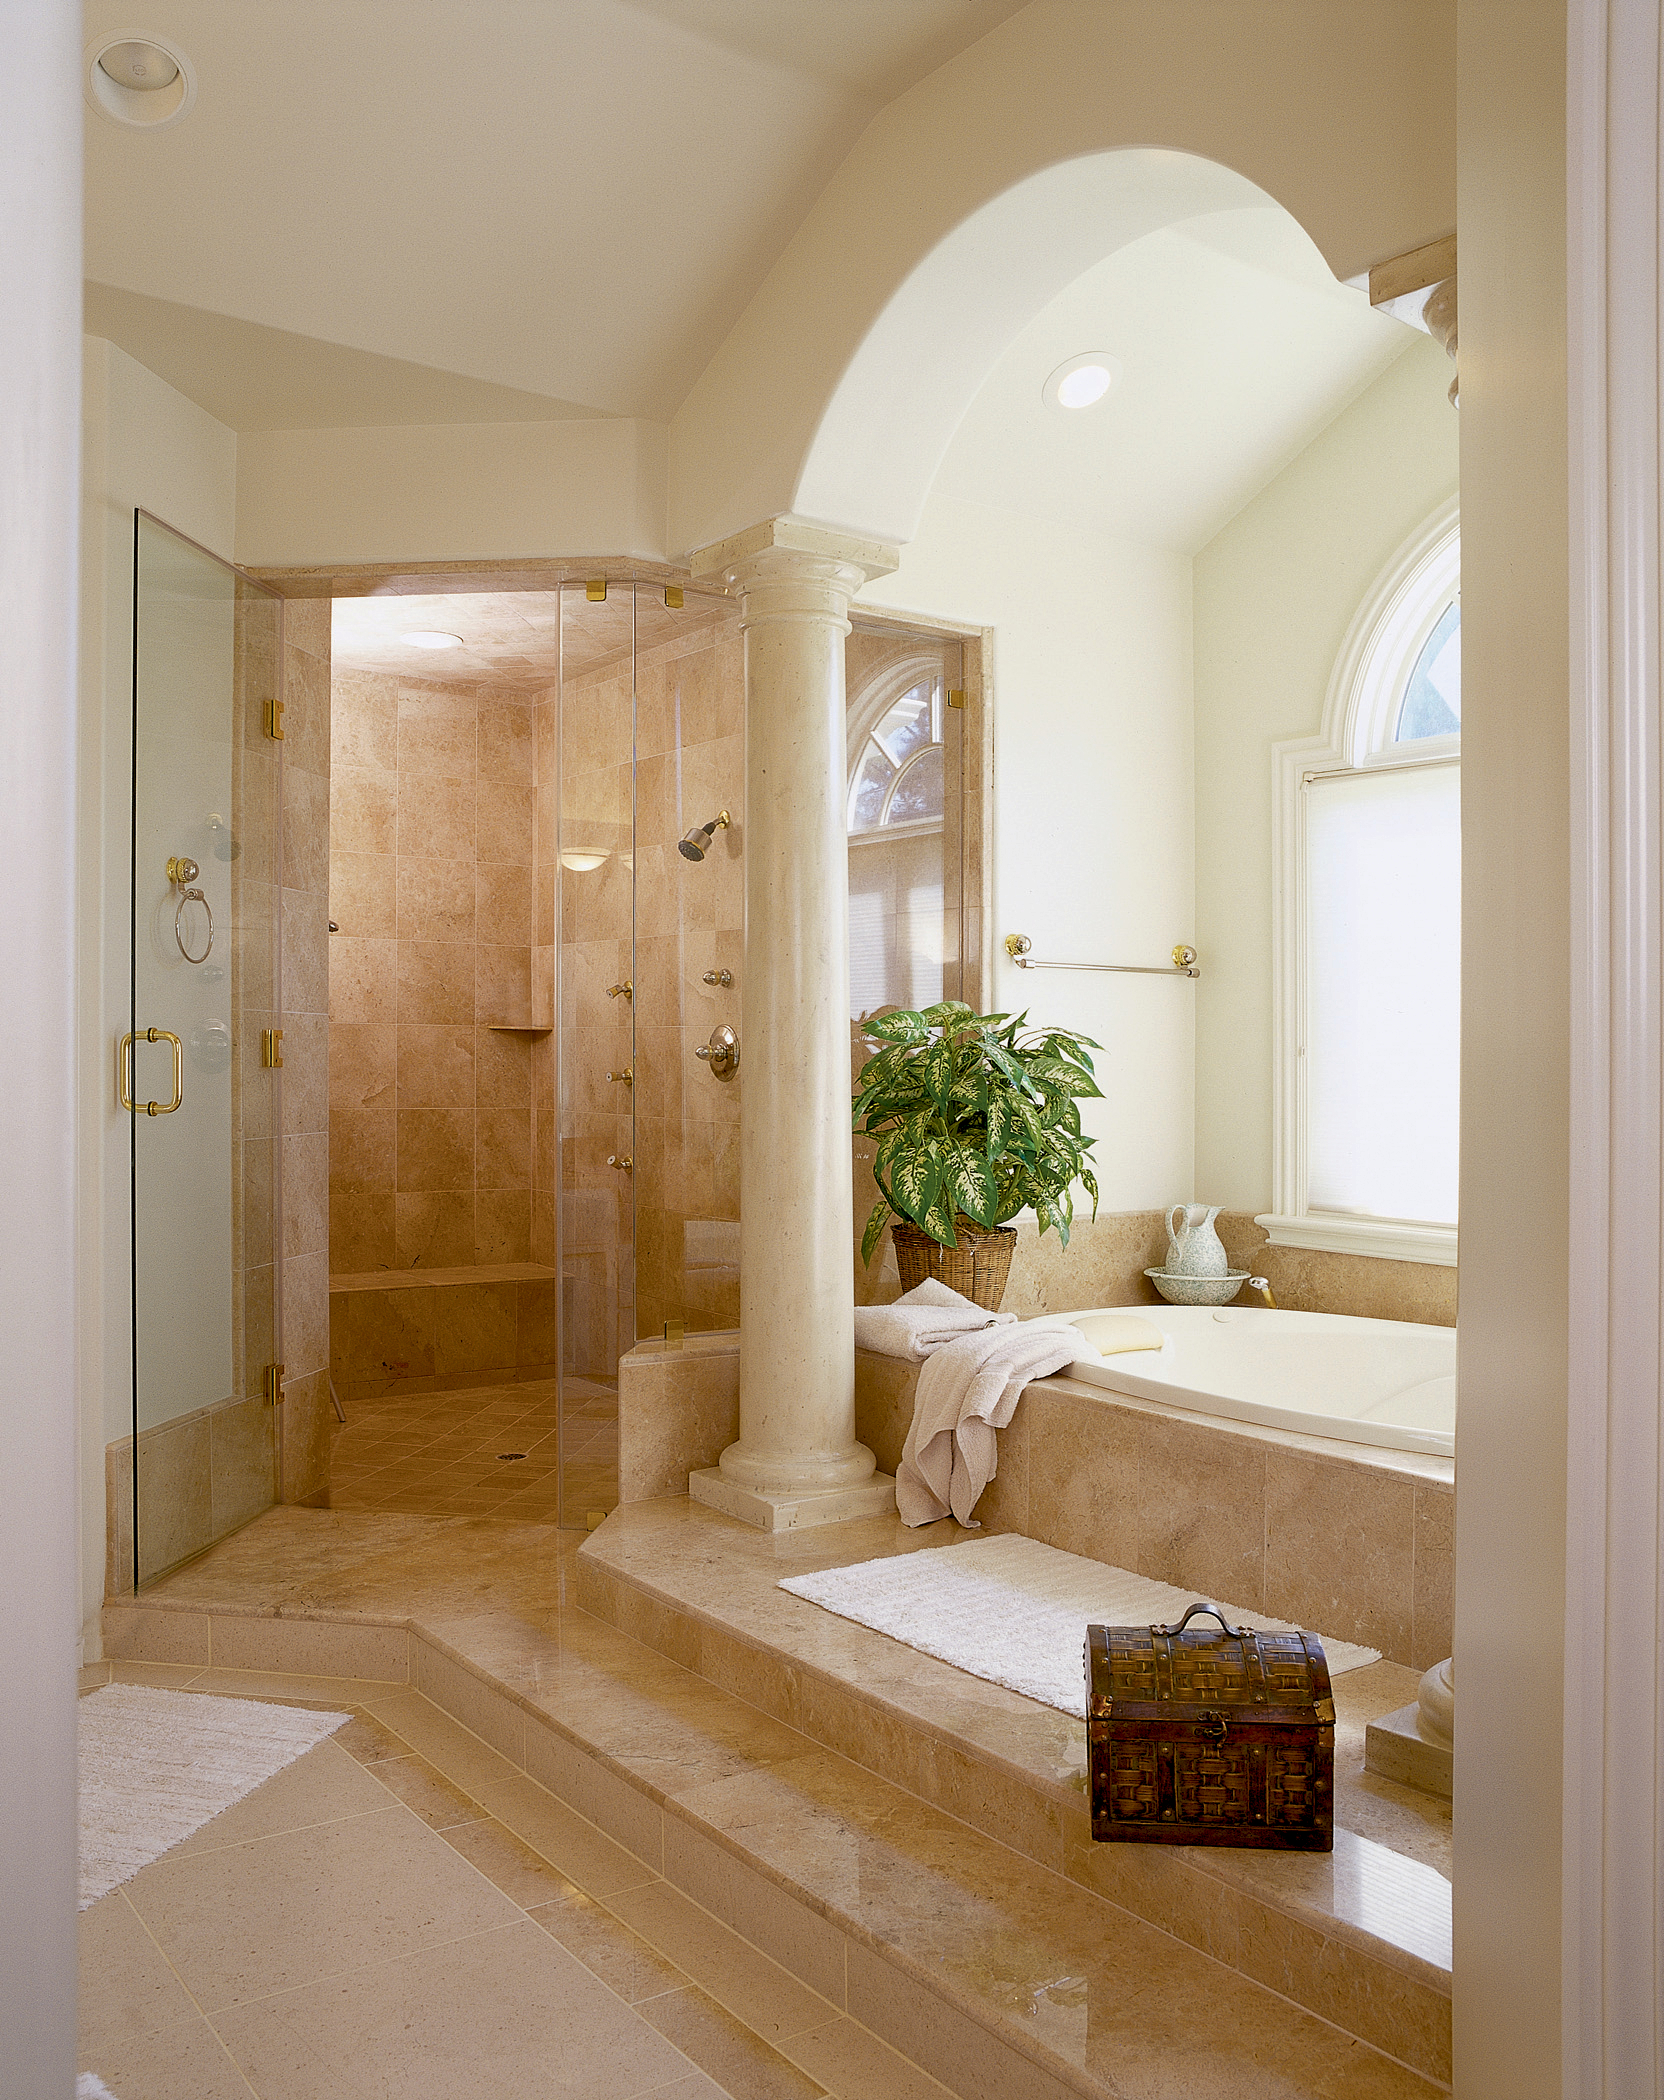 Luxury master bath featuring custom tile & marble